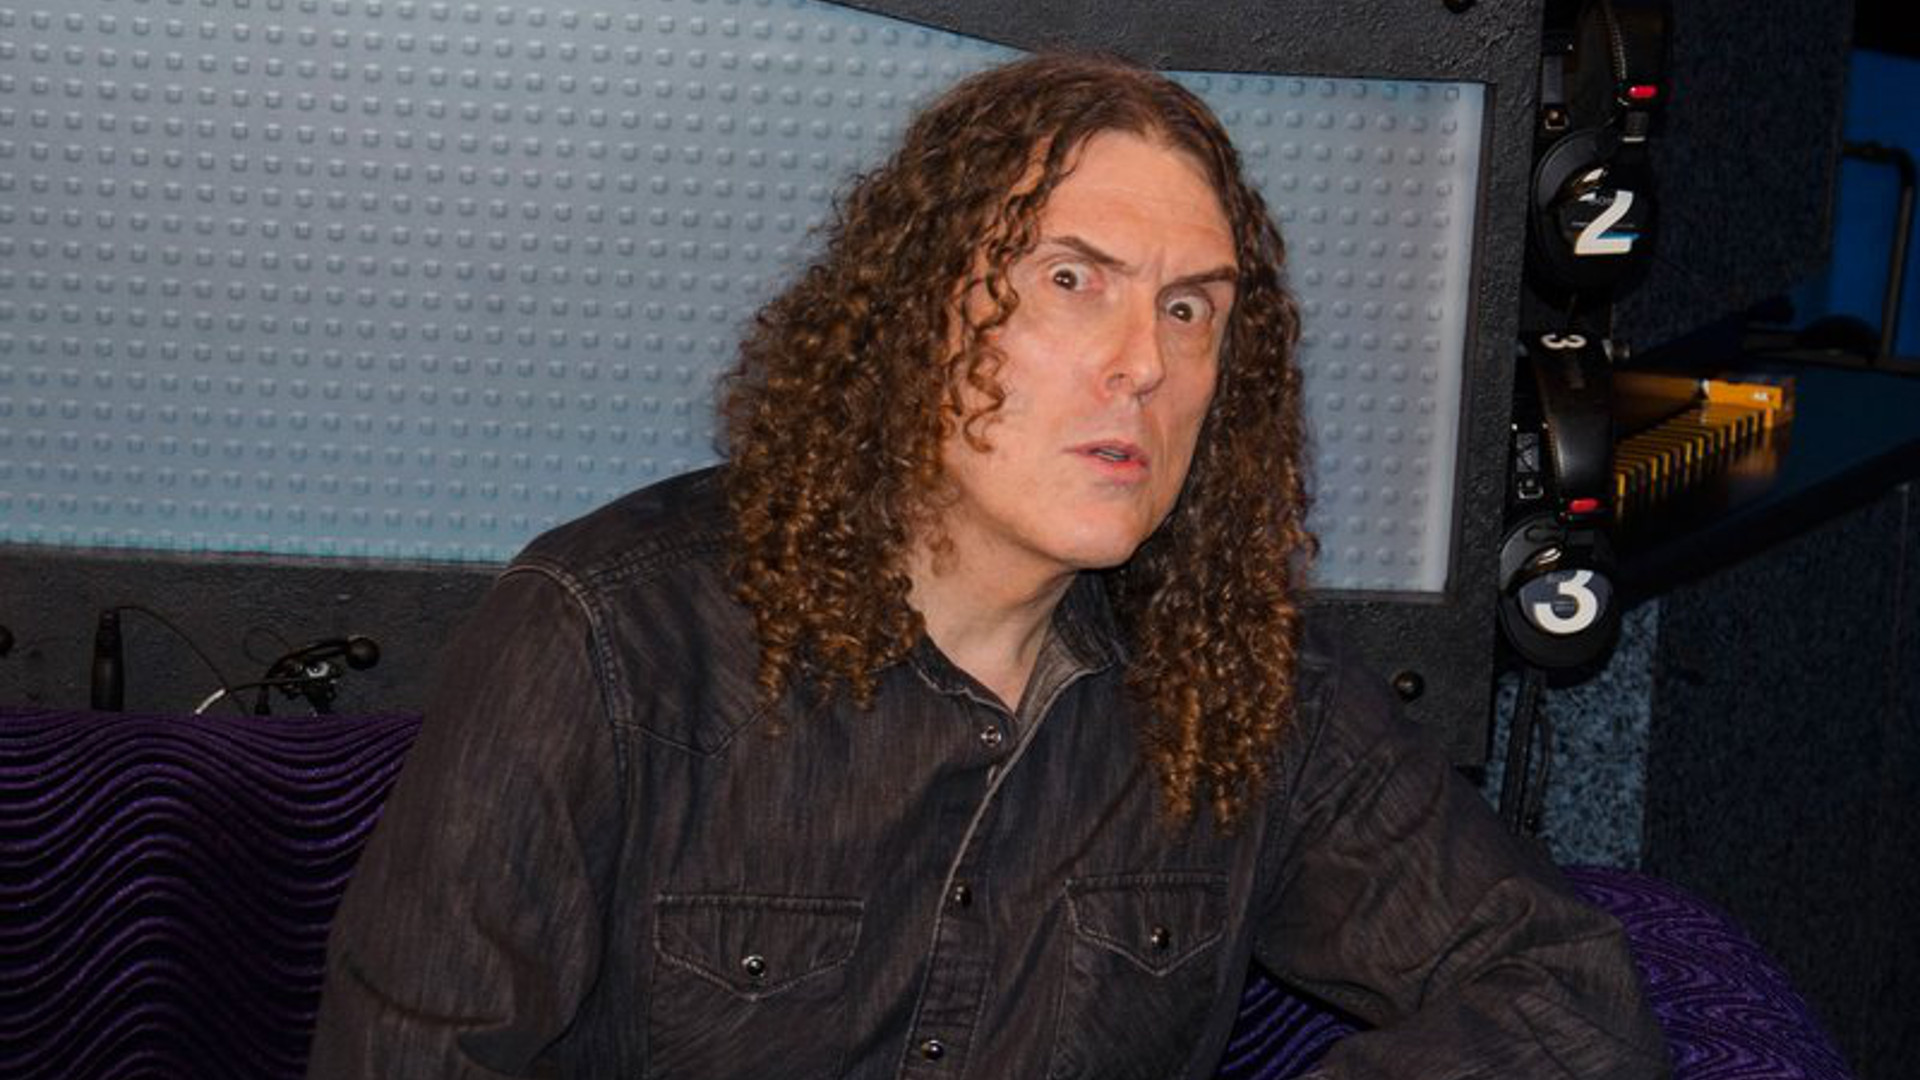 5 Things We Learned About Weird Al Yankovic From His